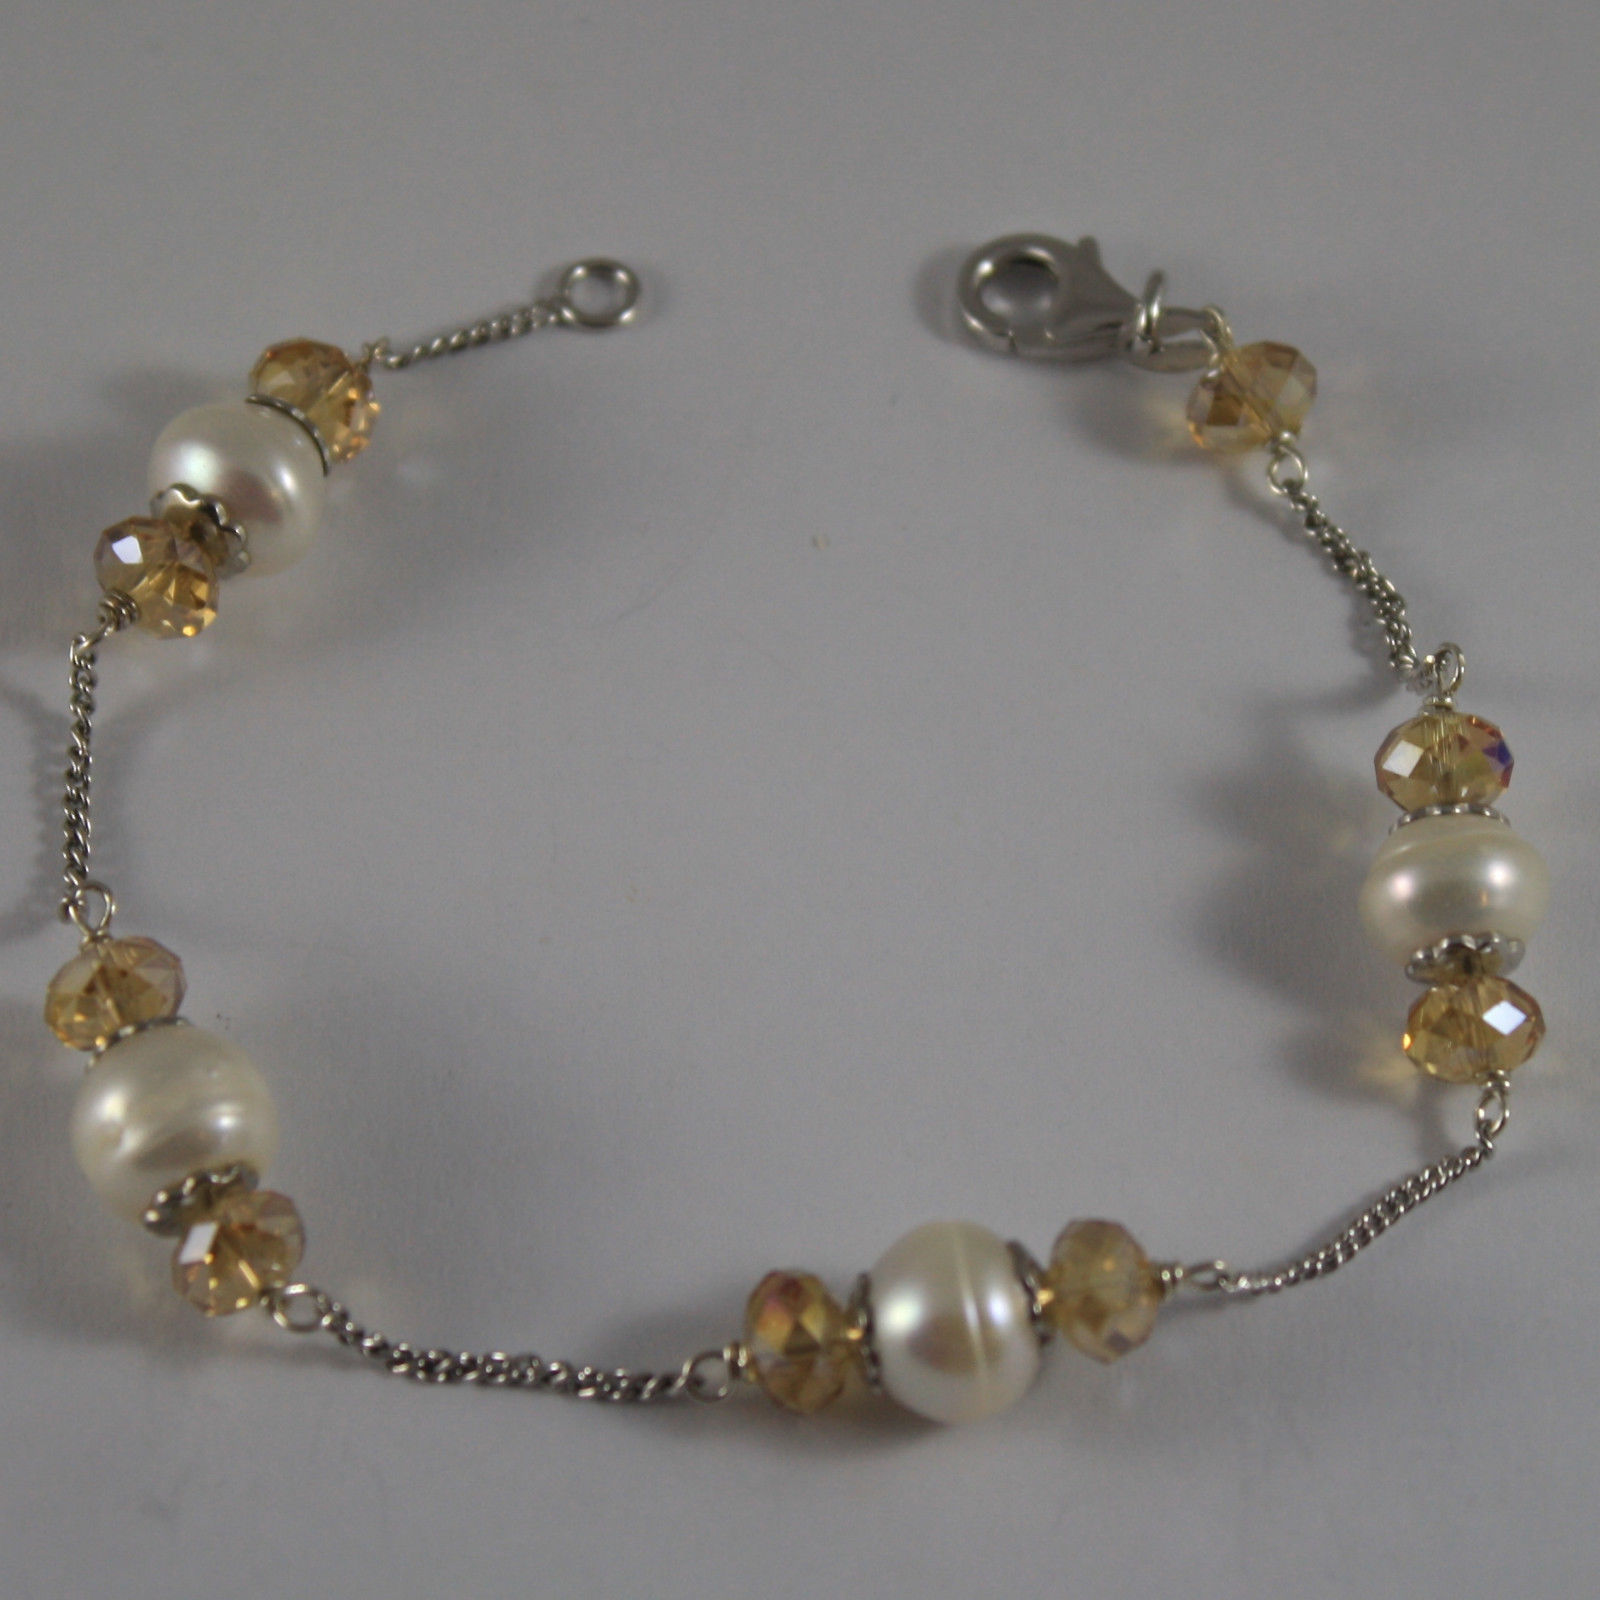 .925 RHODIUM SILVER BRACELET WITH YELLOW CRYSTALS AND WHITE PEARLS